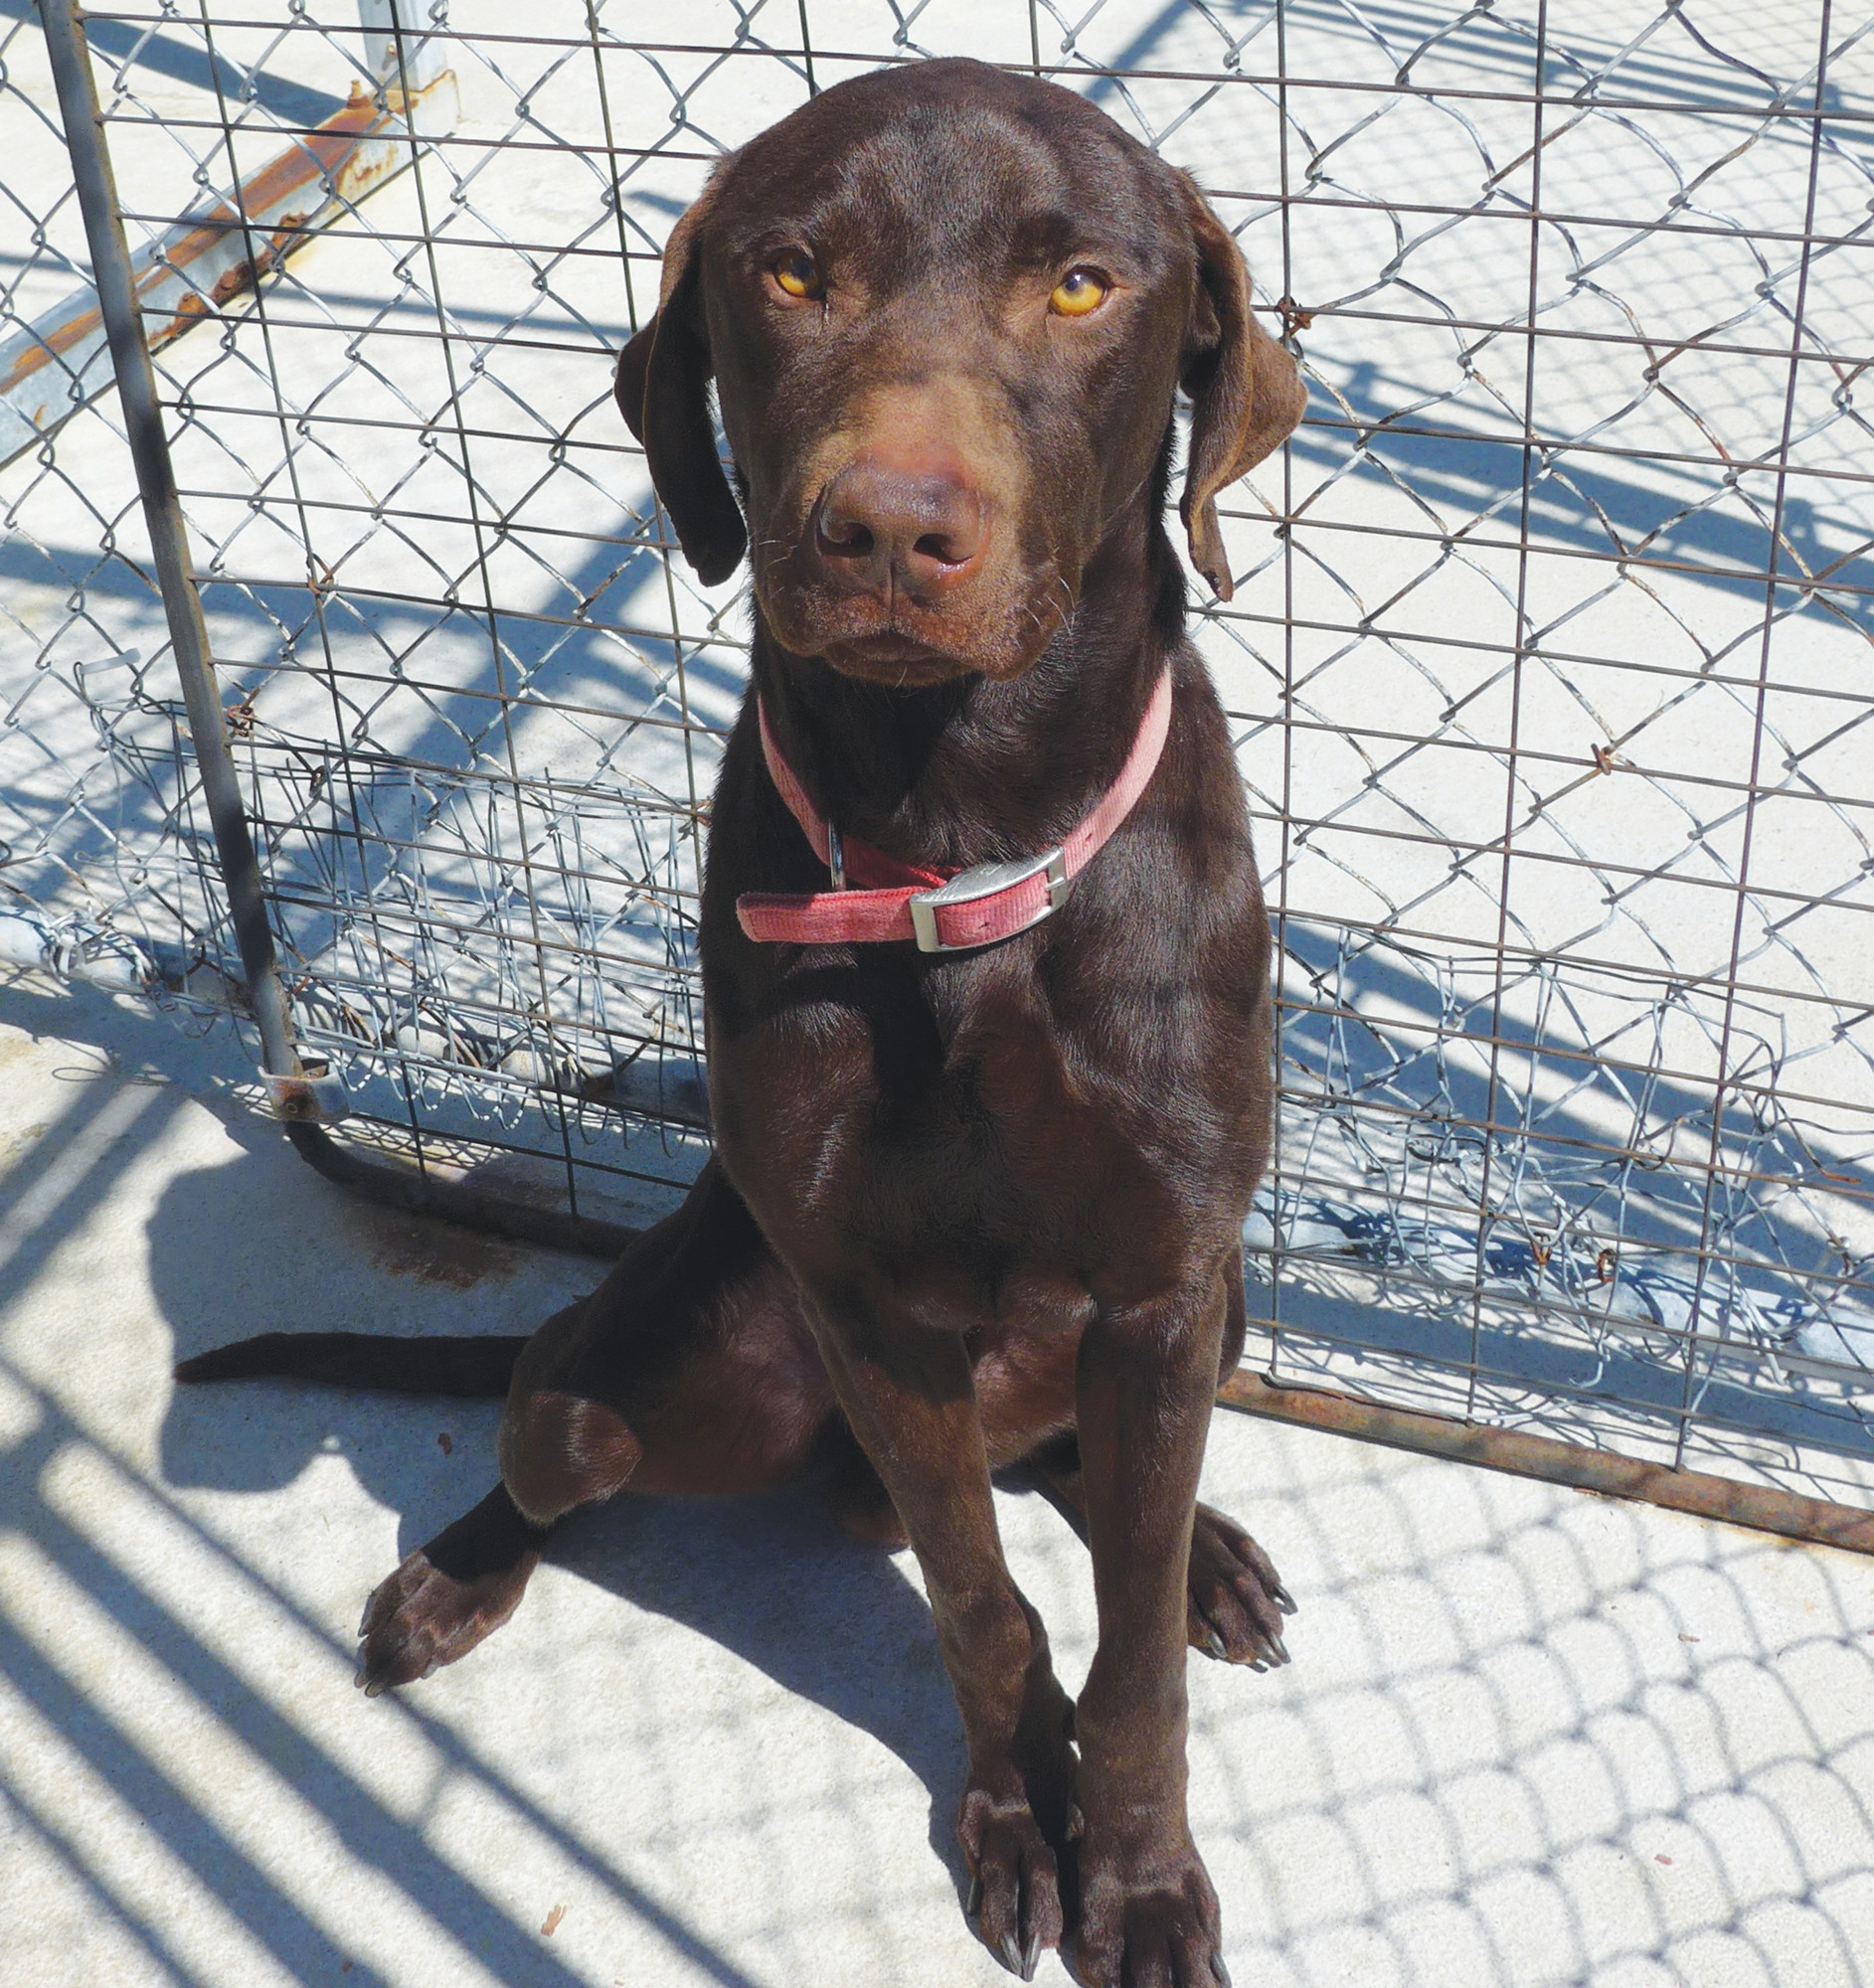 Justin is a 3-year-old male chocolate Labrador/Weimaraner mix. He is a very sweet boy who loves to go for walks. He is picky about what dogs he likes. He is current on his shots, has been neutered and tested negative for heartworms. If you have a lot of time to give to this boy, come out and see if he is a fit for you.